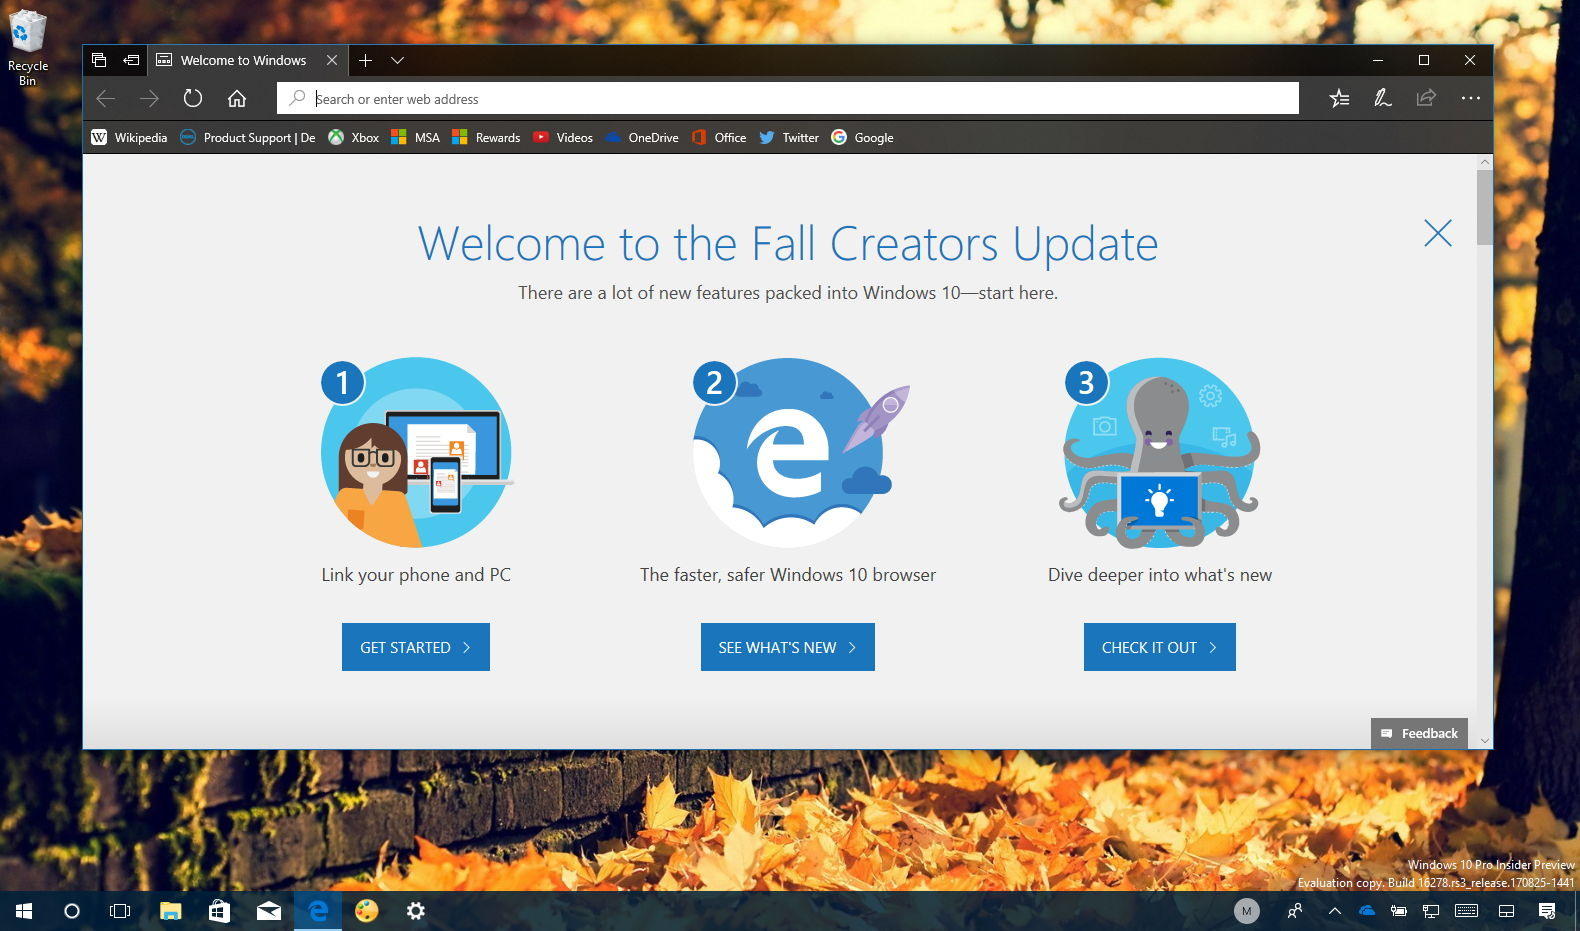 Windows 10 Fall Creators Update clean install